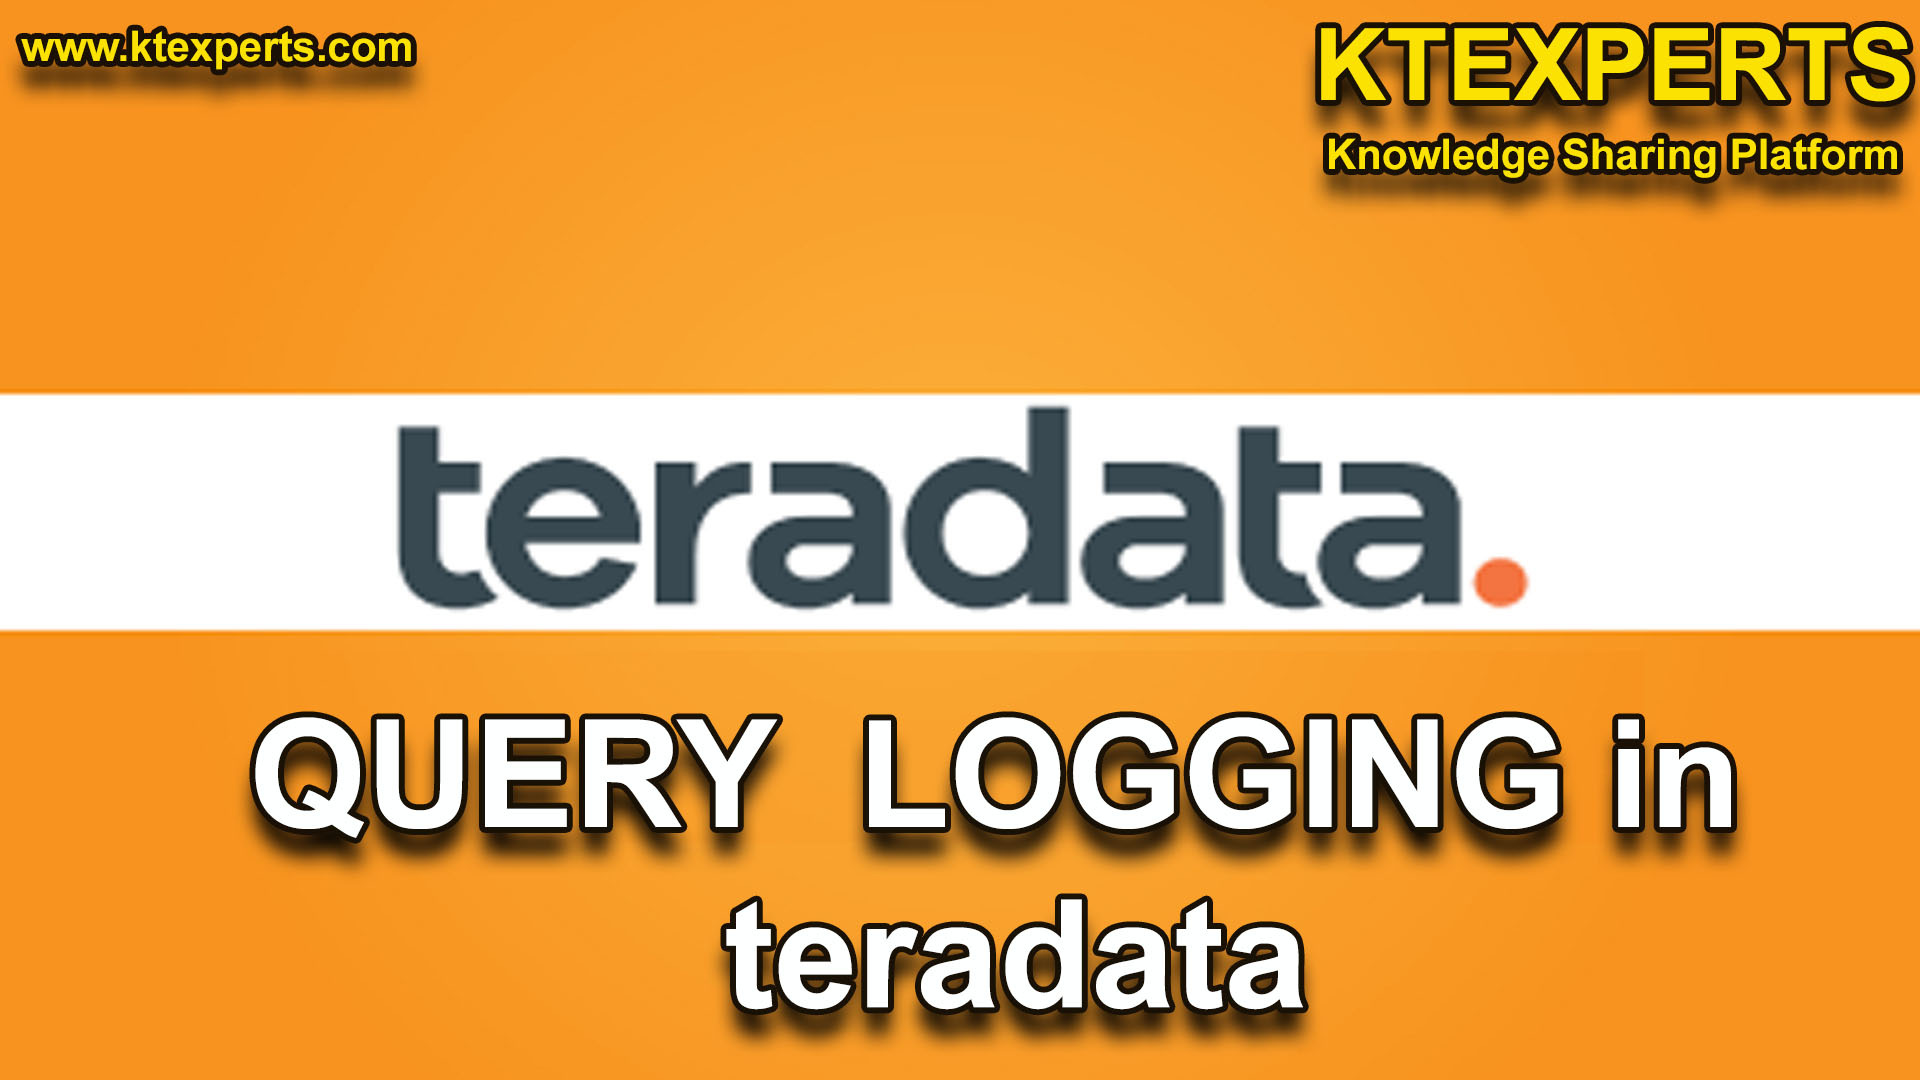 QUERY  LOGGING IN TERADATA